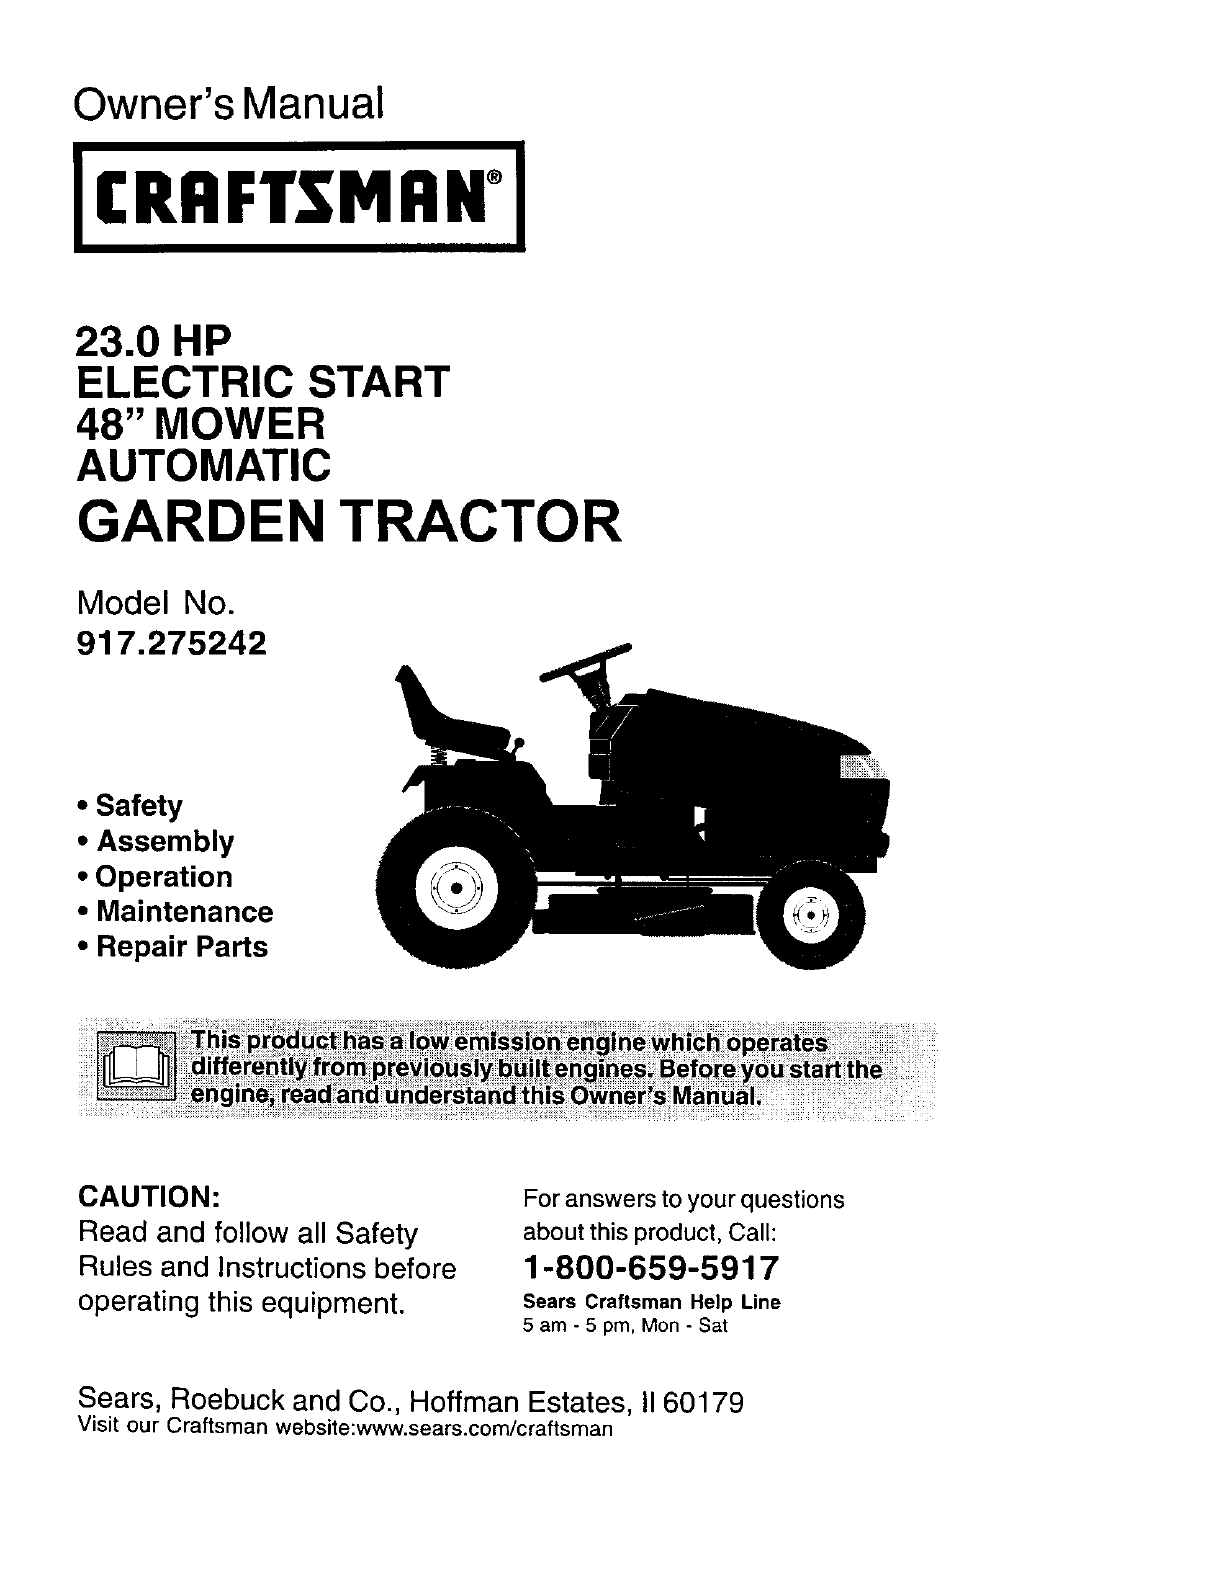 Craftsman 917275242 User Manual Lawn Tractor Manuals And Guides L0109175 Electric Mower Electrical Schematics